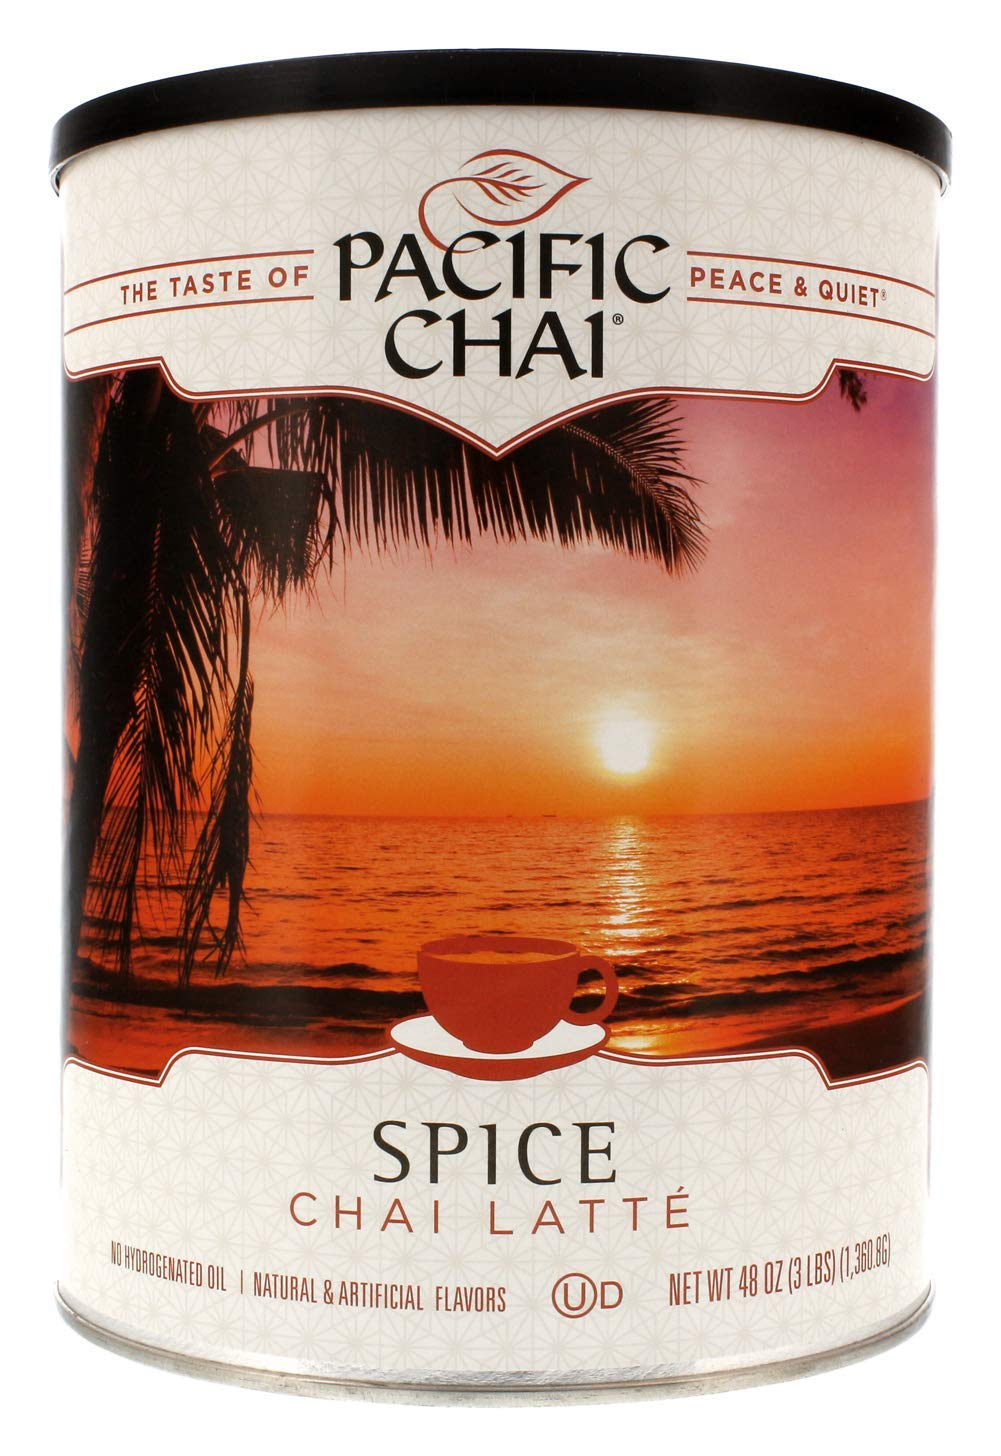 Pacific Chai Spice Chai Latte Instant Powdered Mix, 3 Pound Canister (Pack of 6) by Pacific Chai